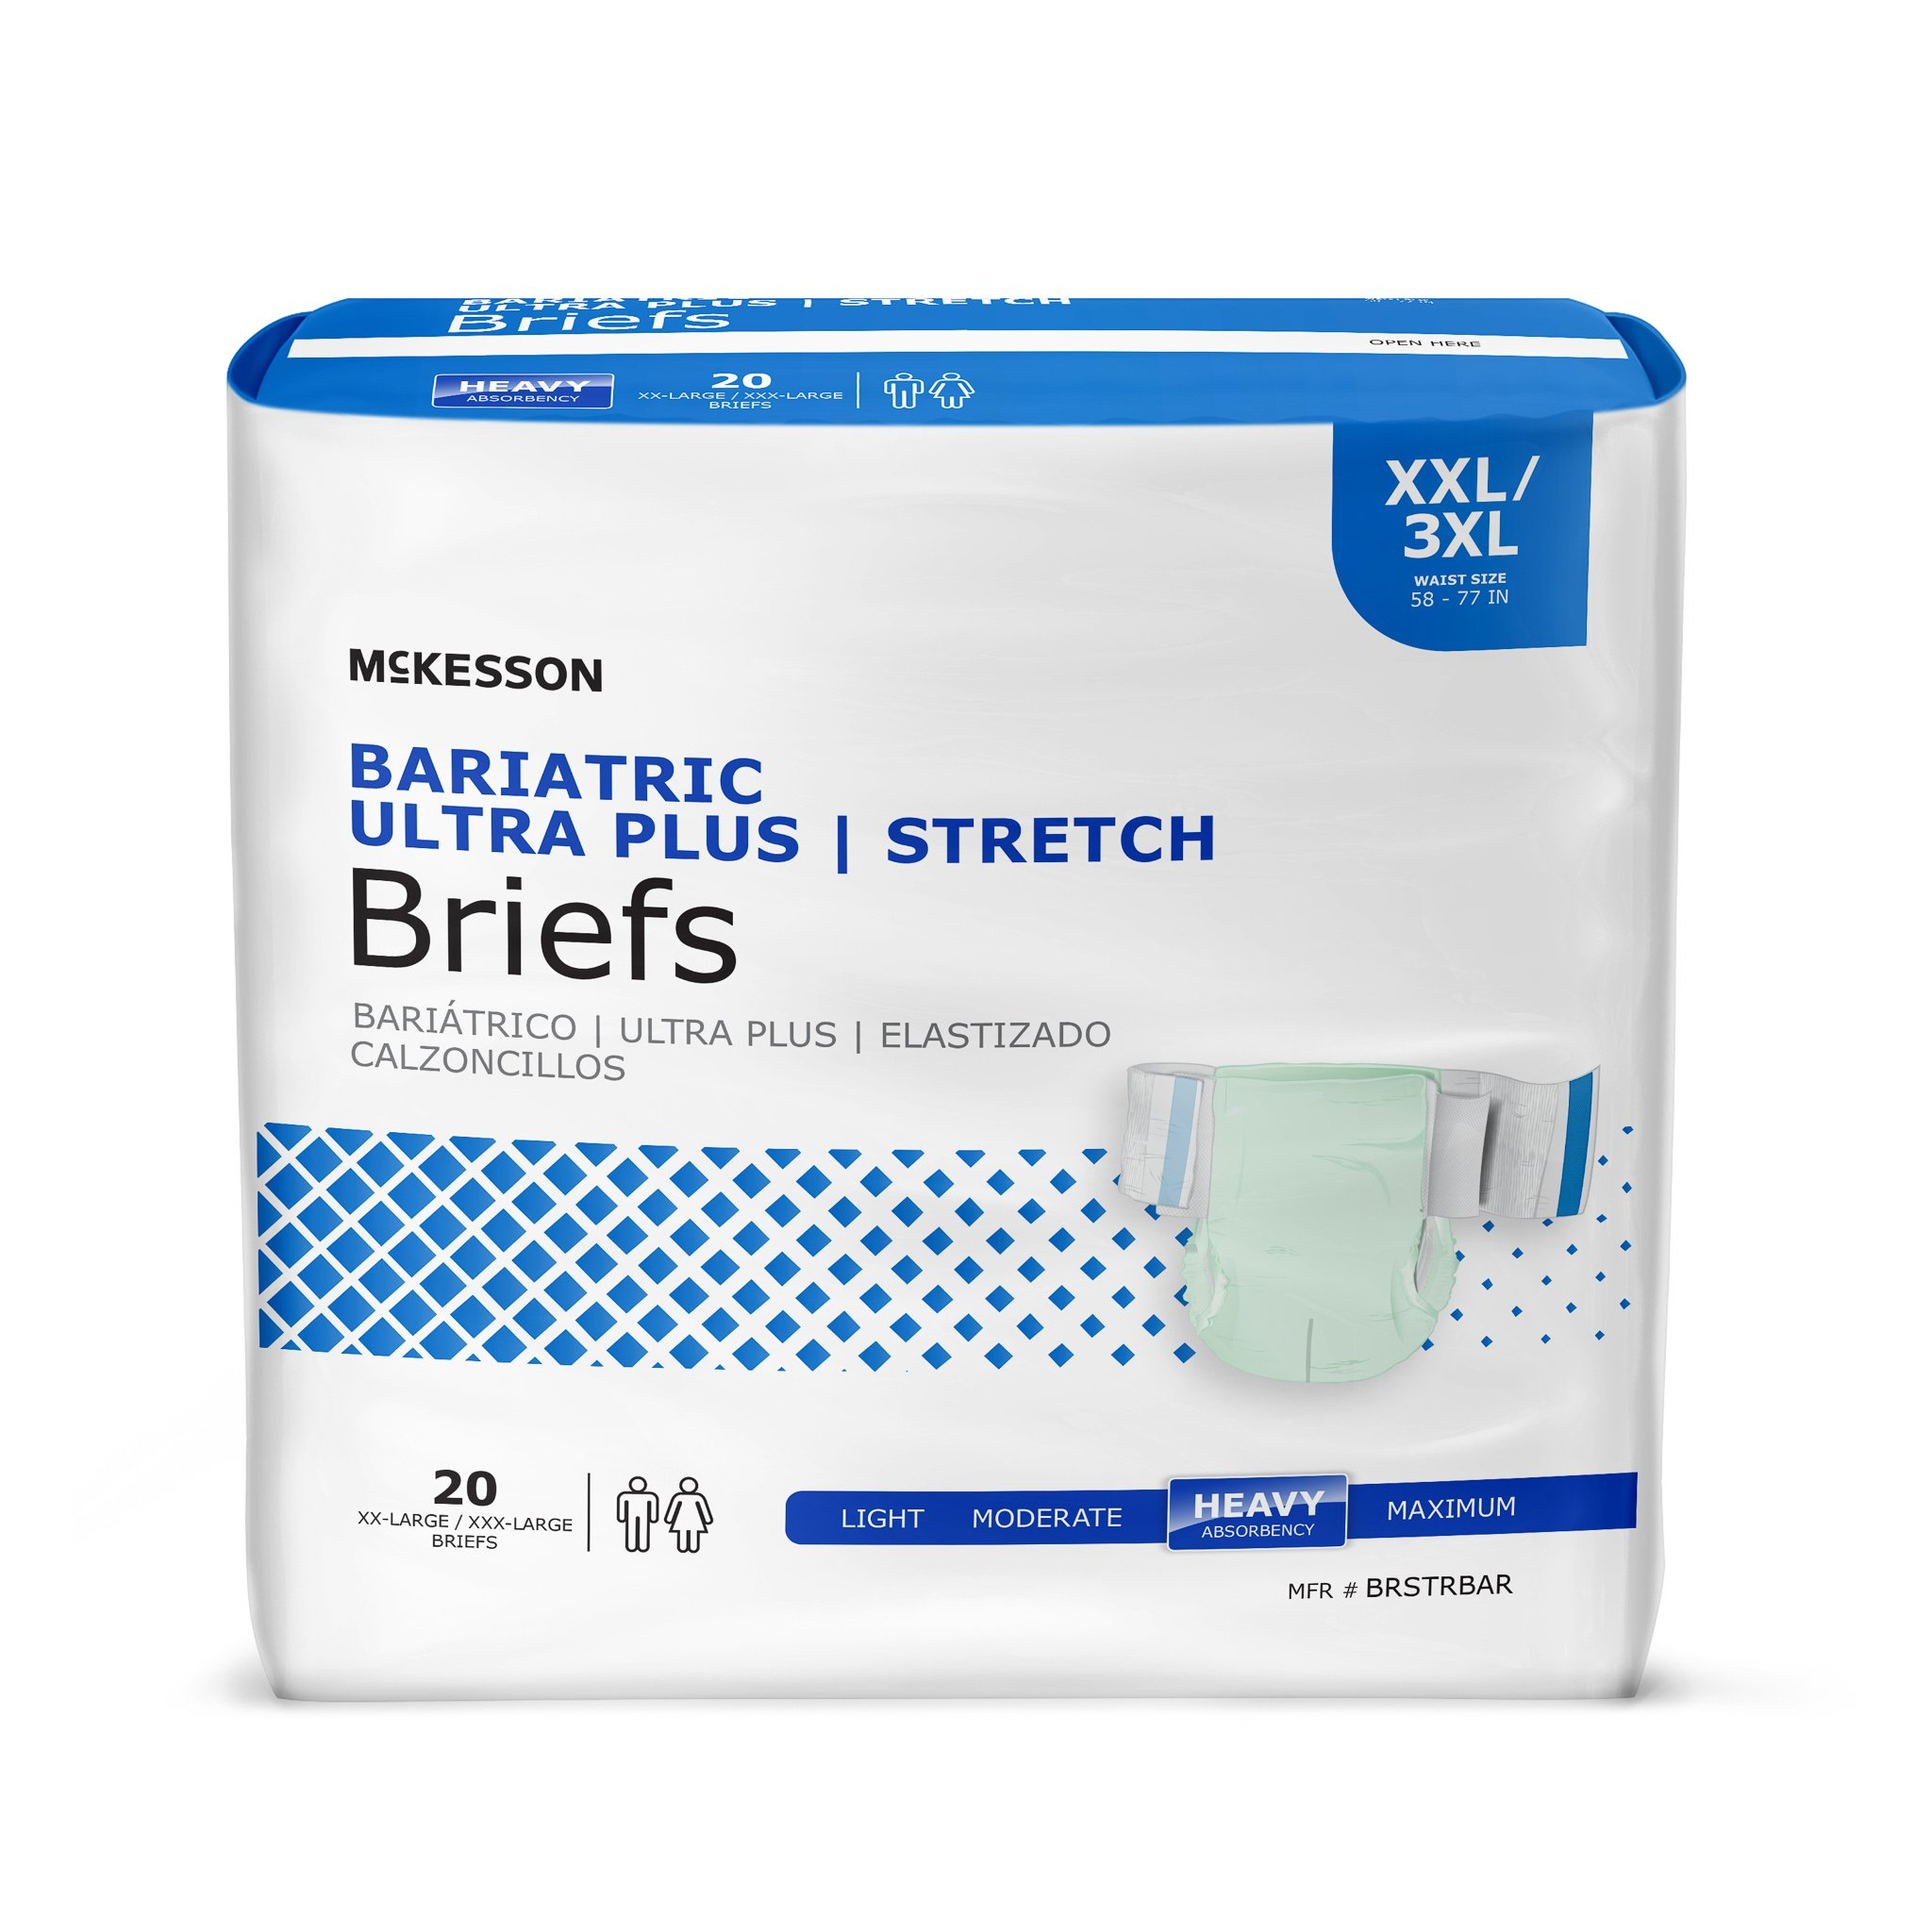 """McKesson Bariatric Ultra Plus Stretch Brief Adult Diapers with Tabs, Heavy Absorbency, BRSTRBAR, Light Green - 2XL/3XL (58-77"""") - Bag of 20"""